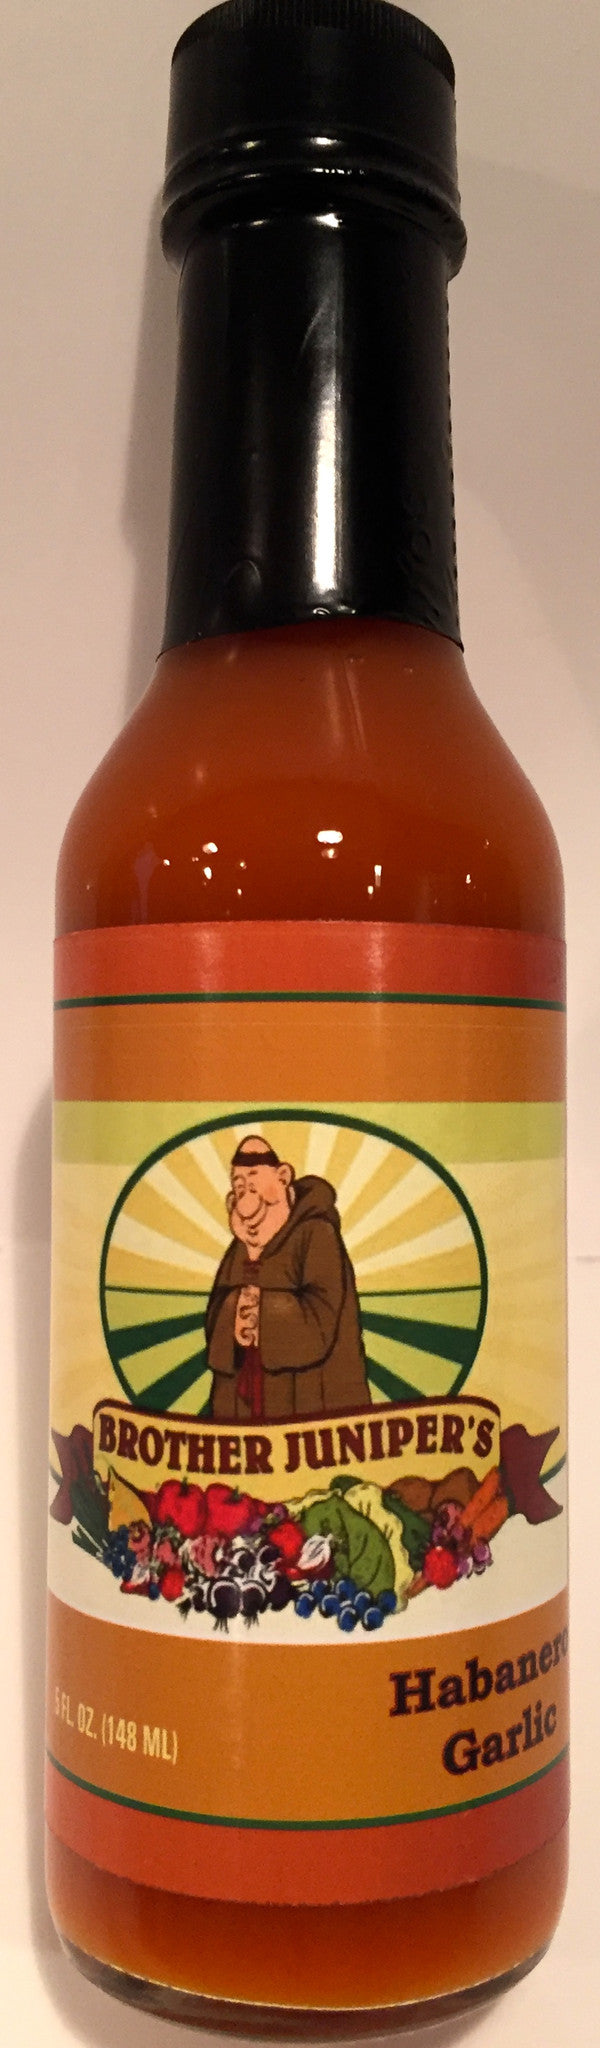 Brother Juniper's Habanero Garlic Hot Sauce